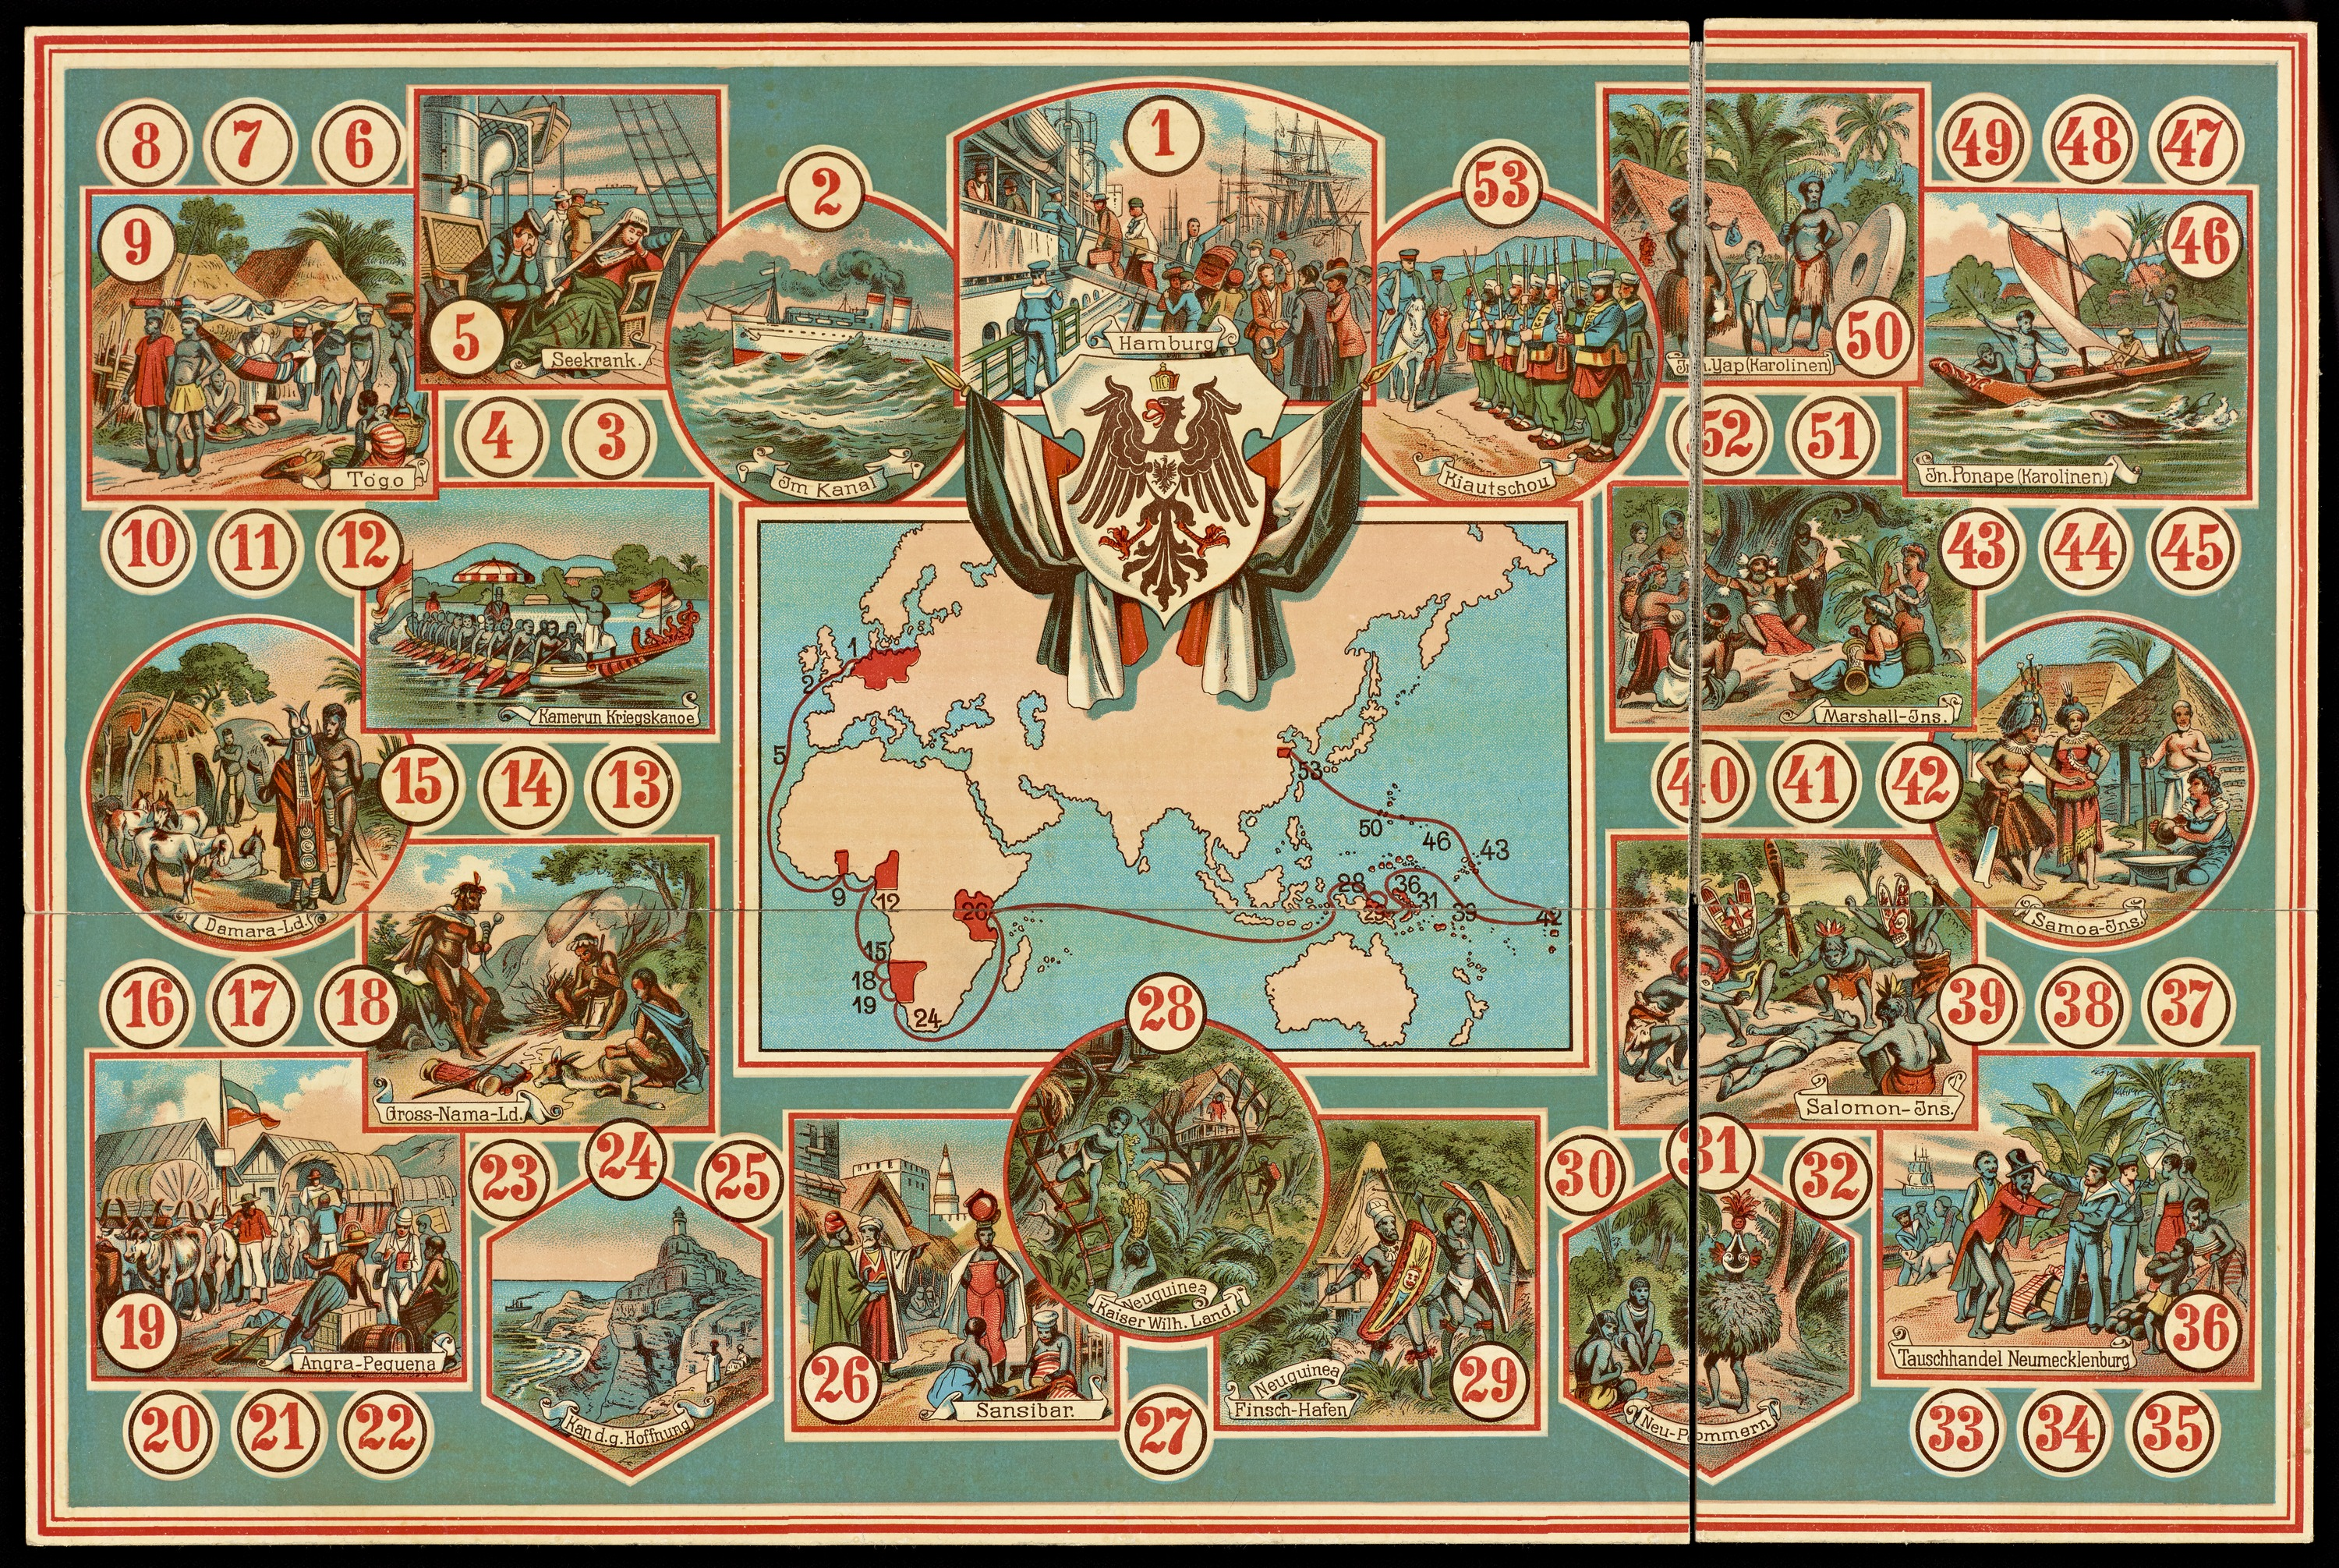 19th Century Board Game Offers A Tour Of The German